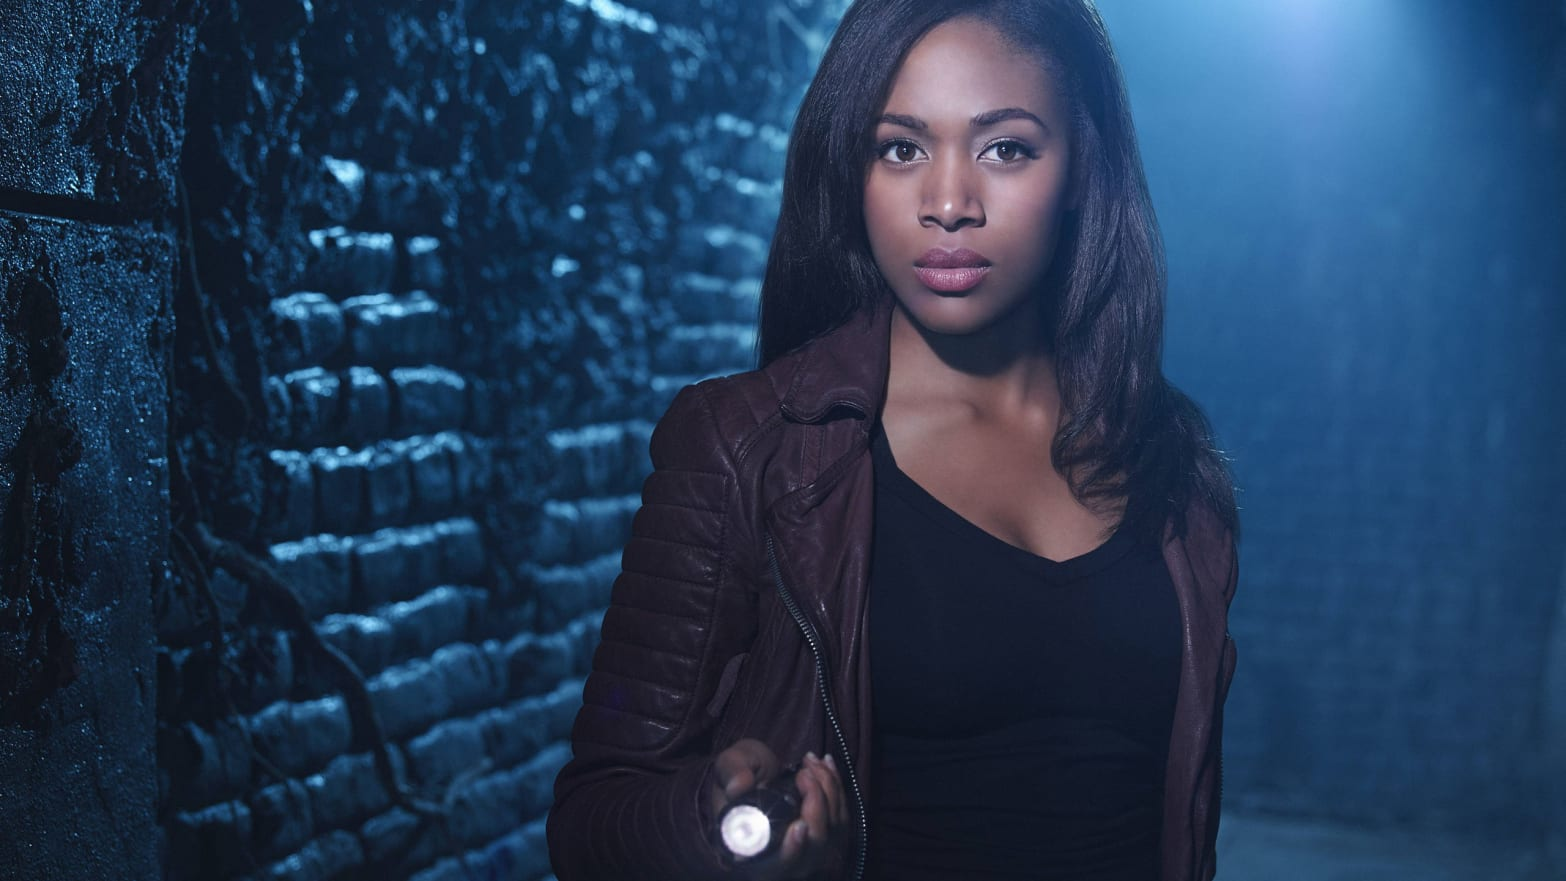 How 'Sleepy Hollow' Lost Its Head and Betrayed Its Last Fans